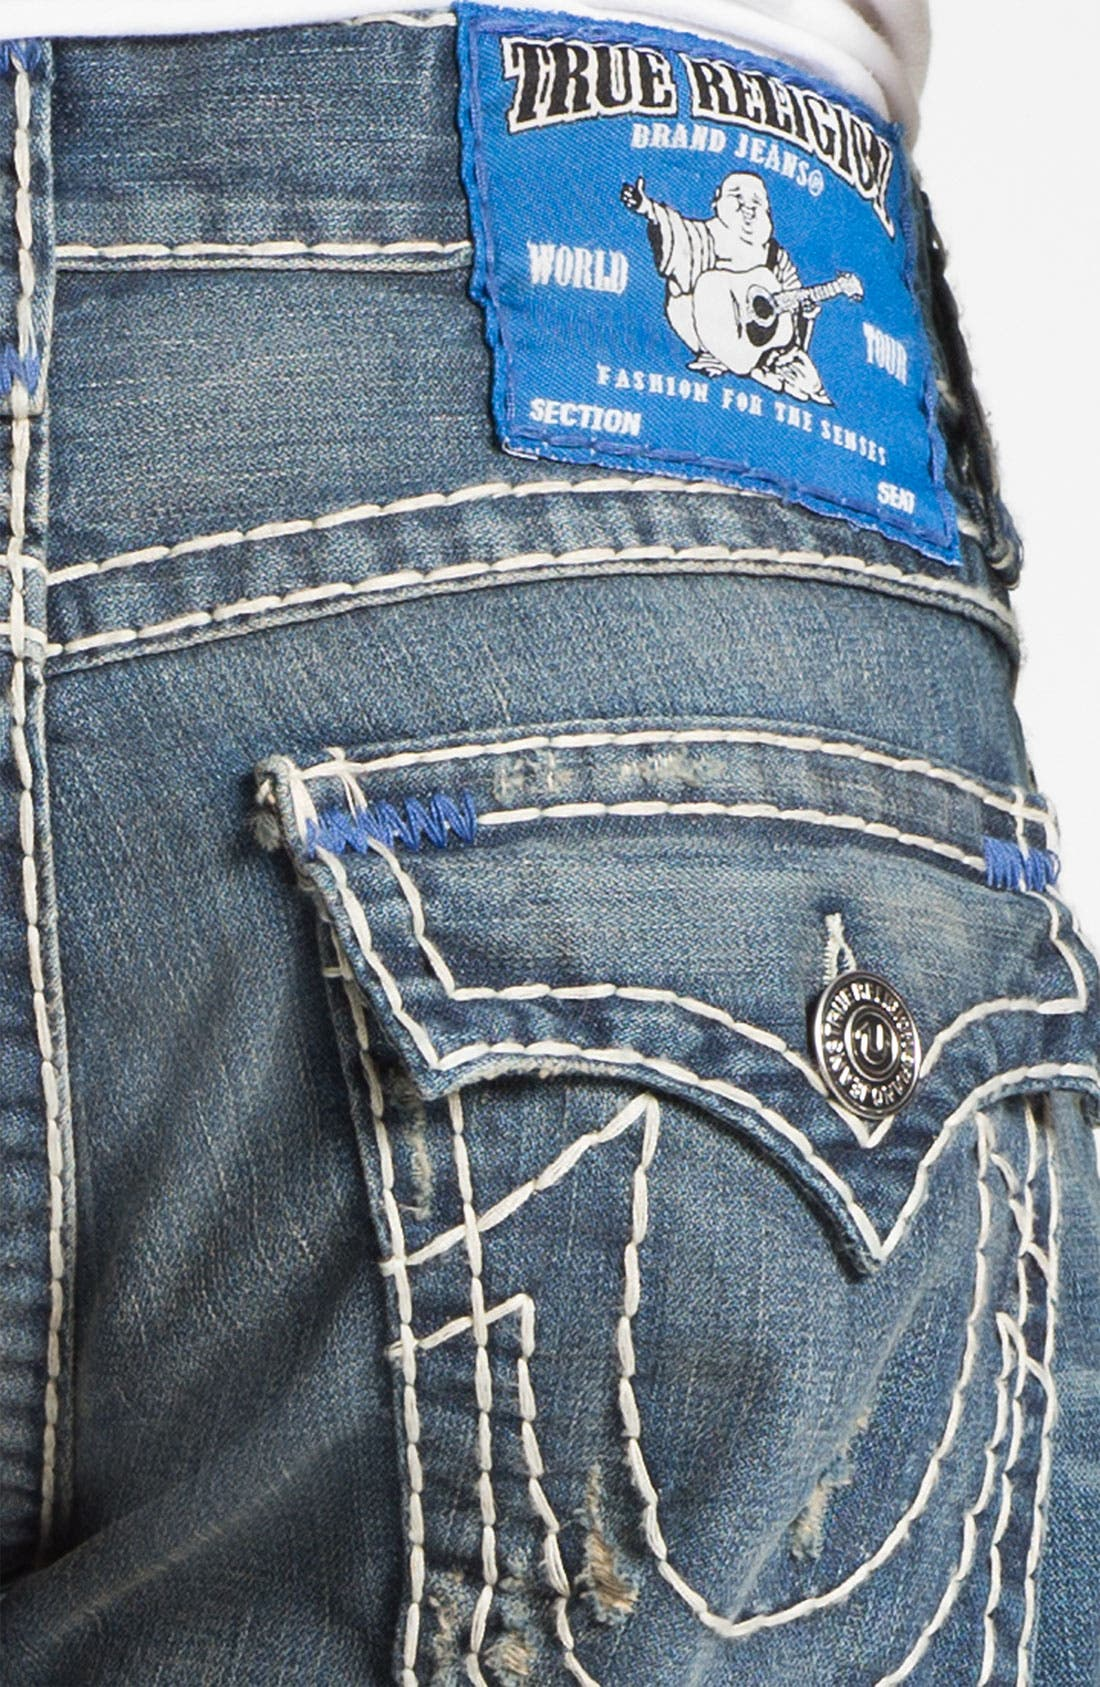 Alternate Image 4  - True Religion Brand Jeans 'Ricky' Straight Leg Jeans (Old Country)